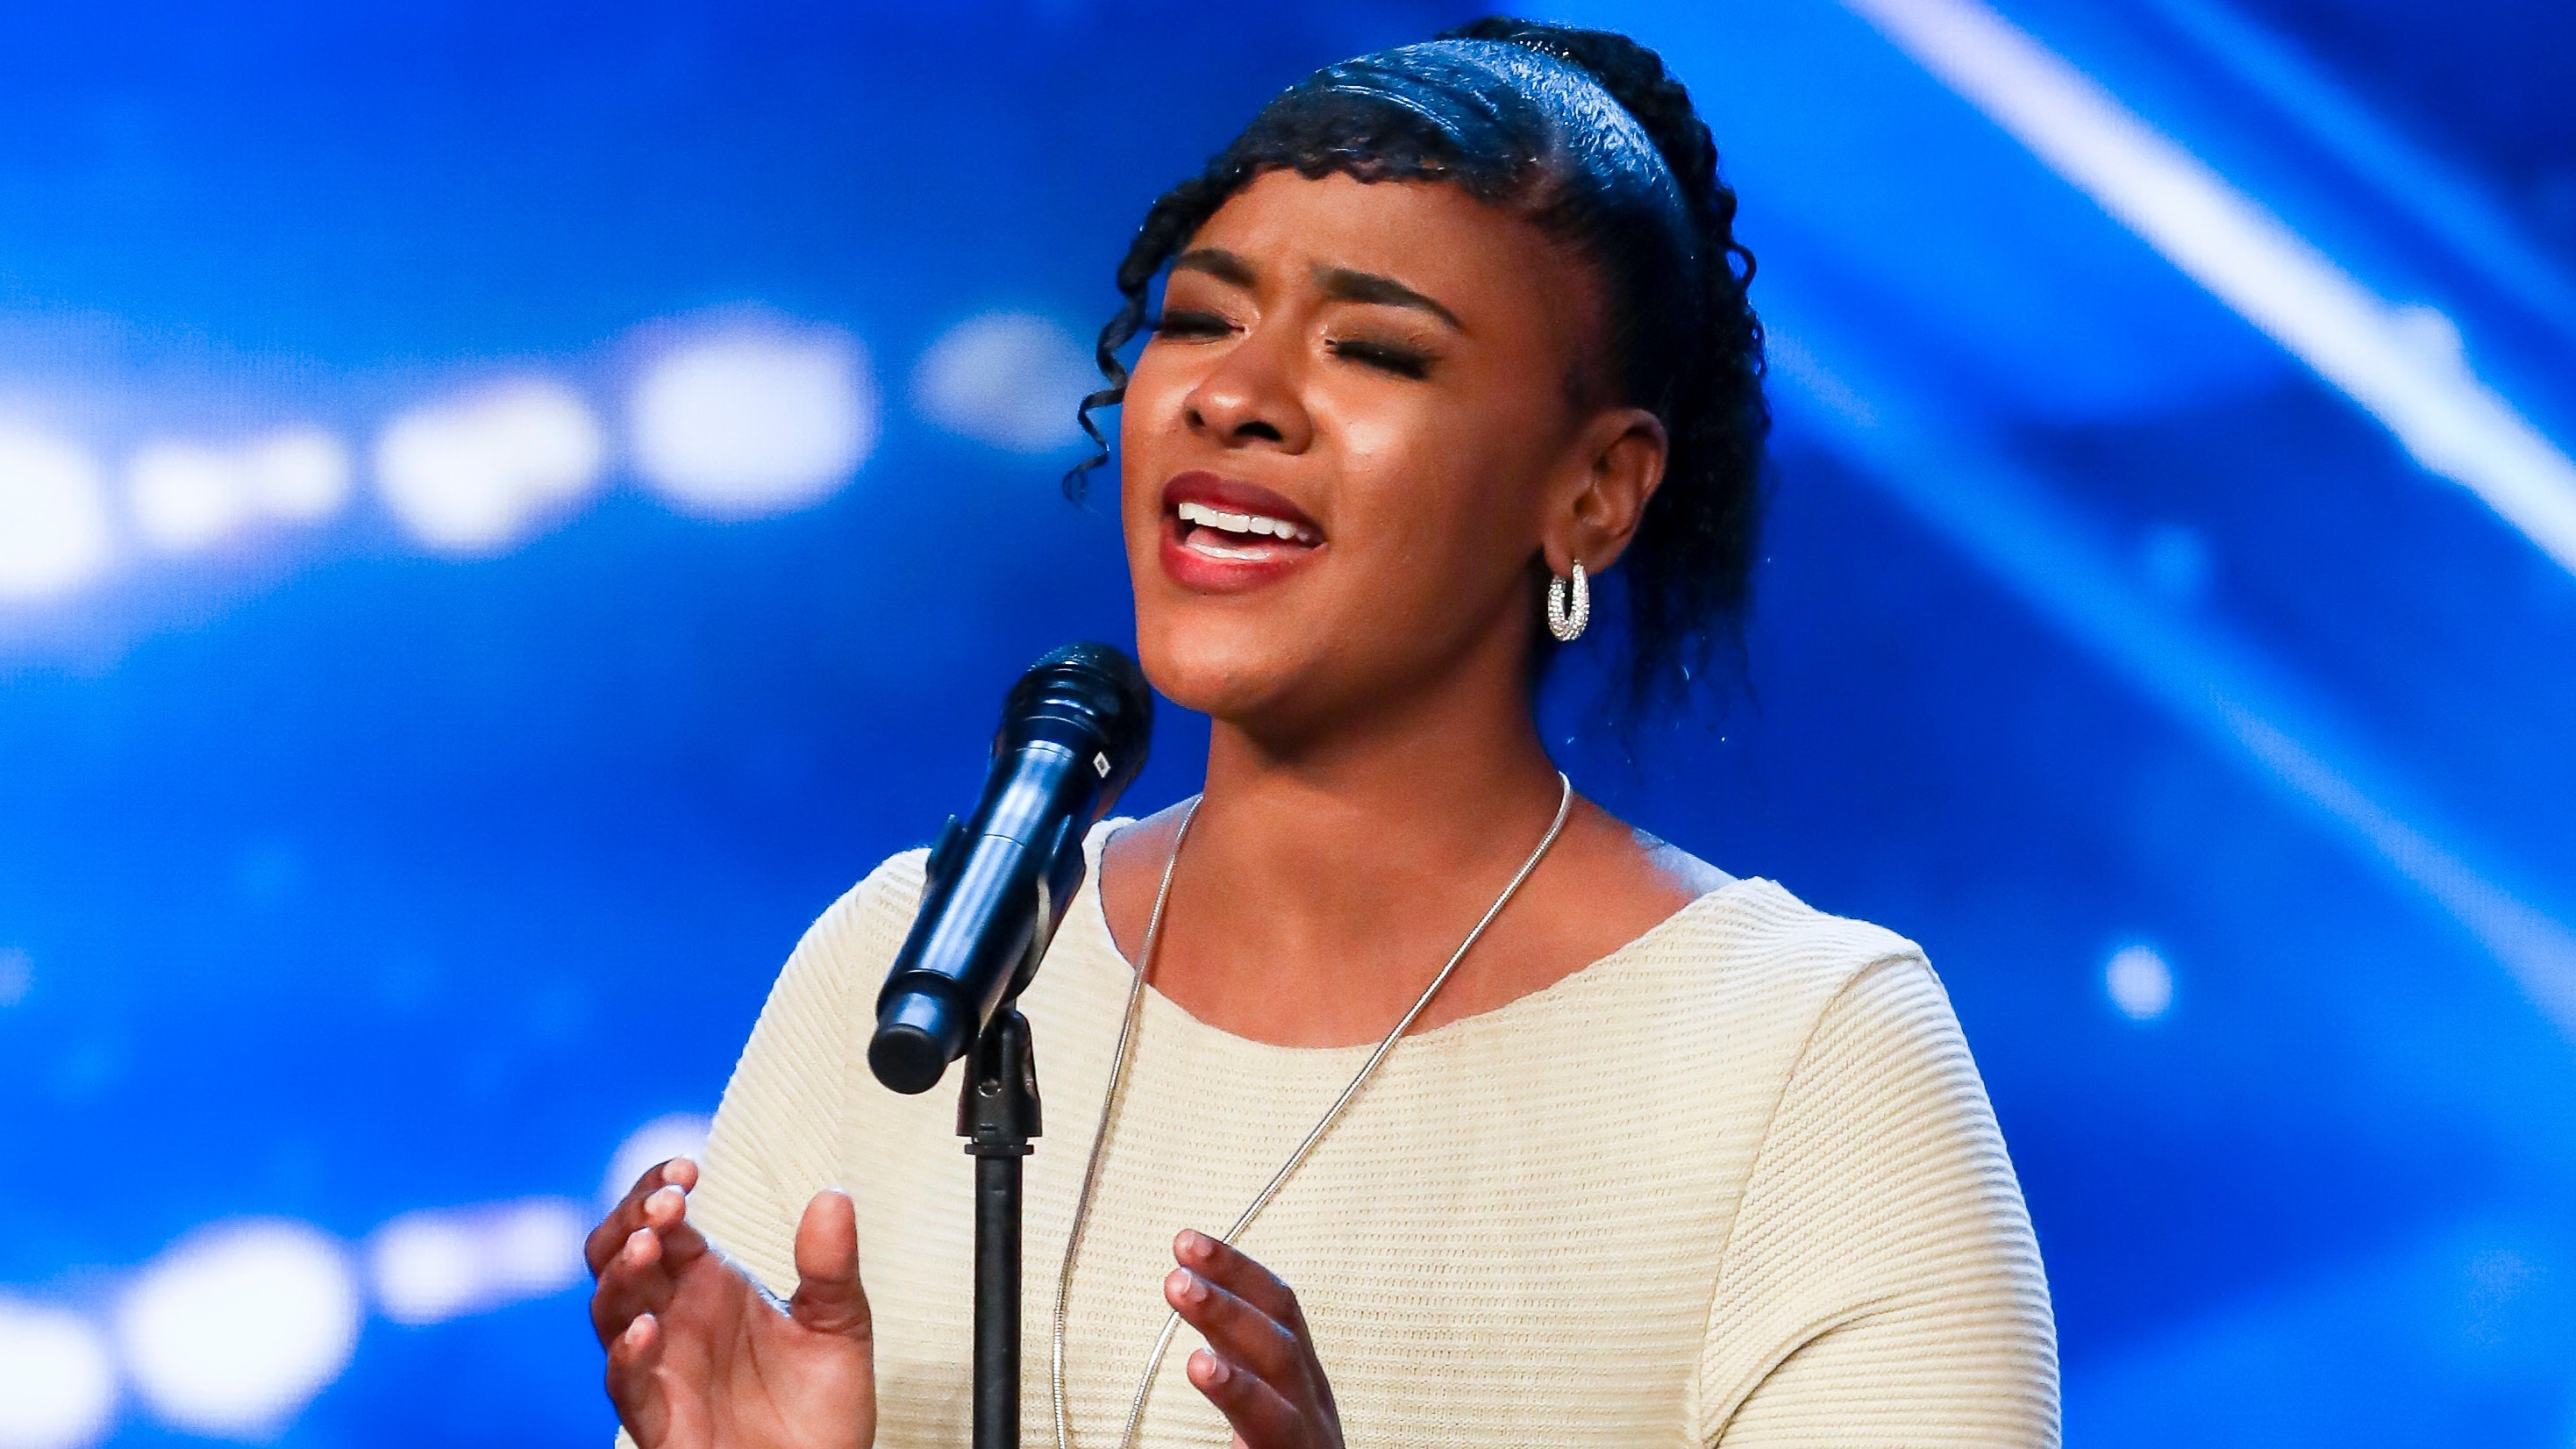 Grenfell Tower survivor Leanne Mya wows BGT judges and audience